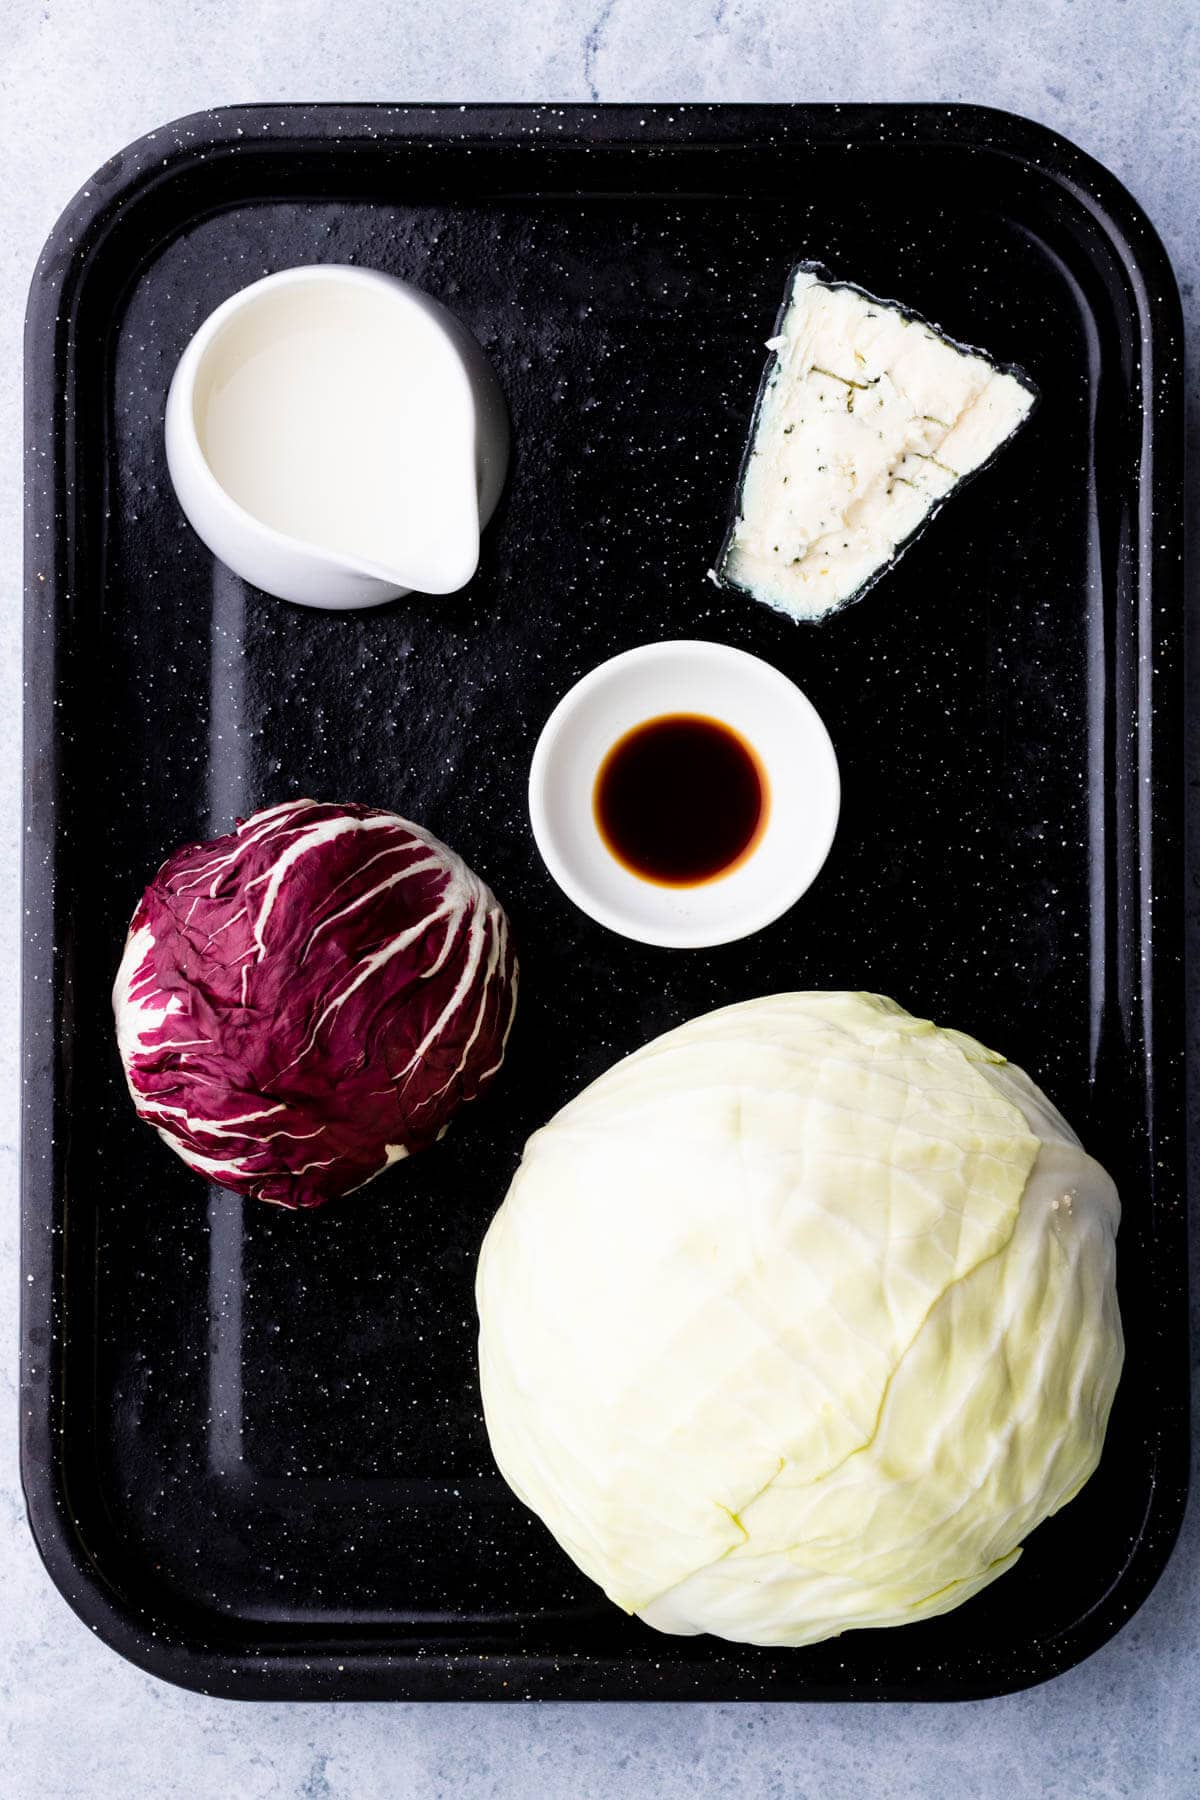 Ingredients for Roasted Cabbage and Blue Cheese sauce.